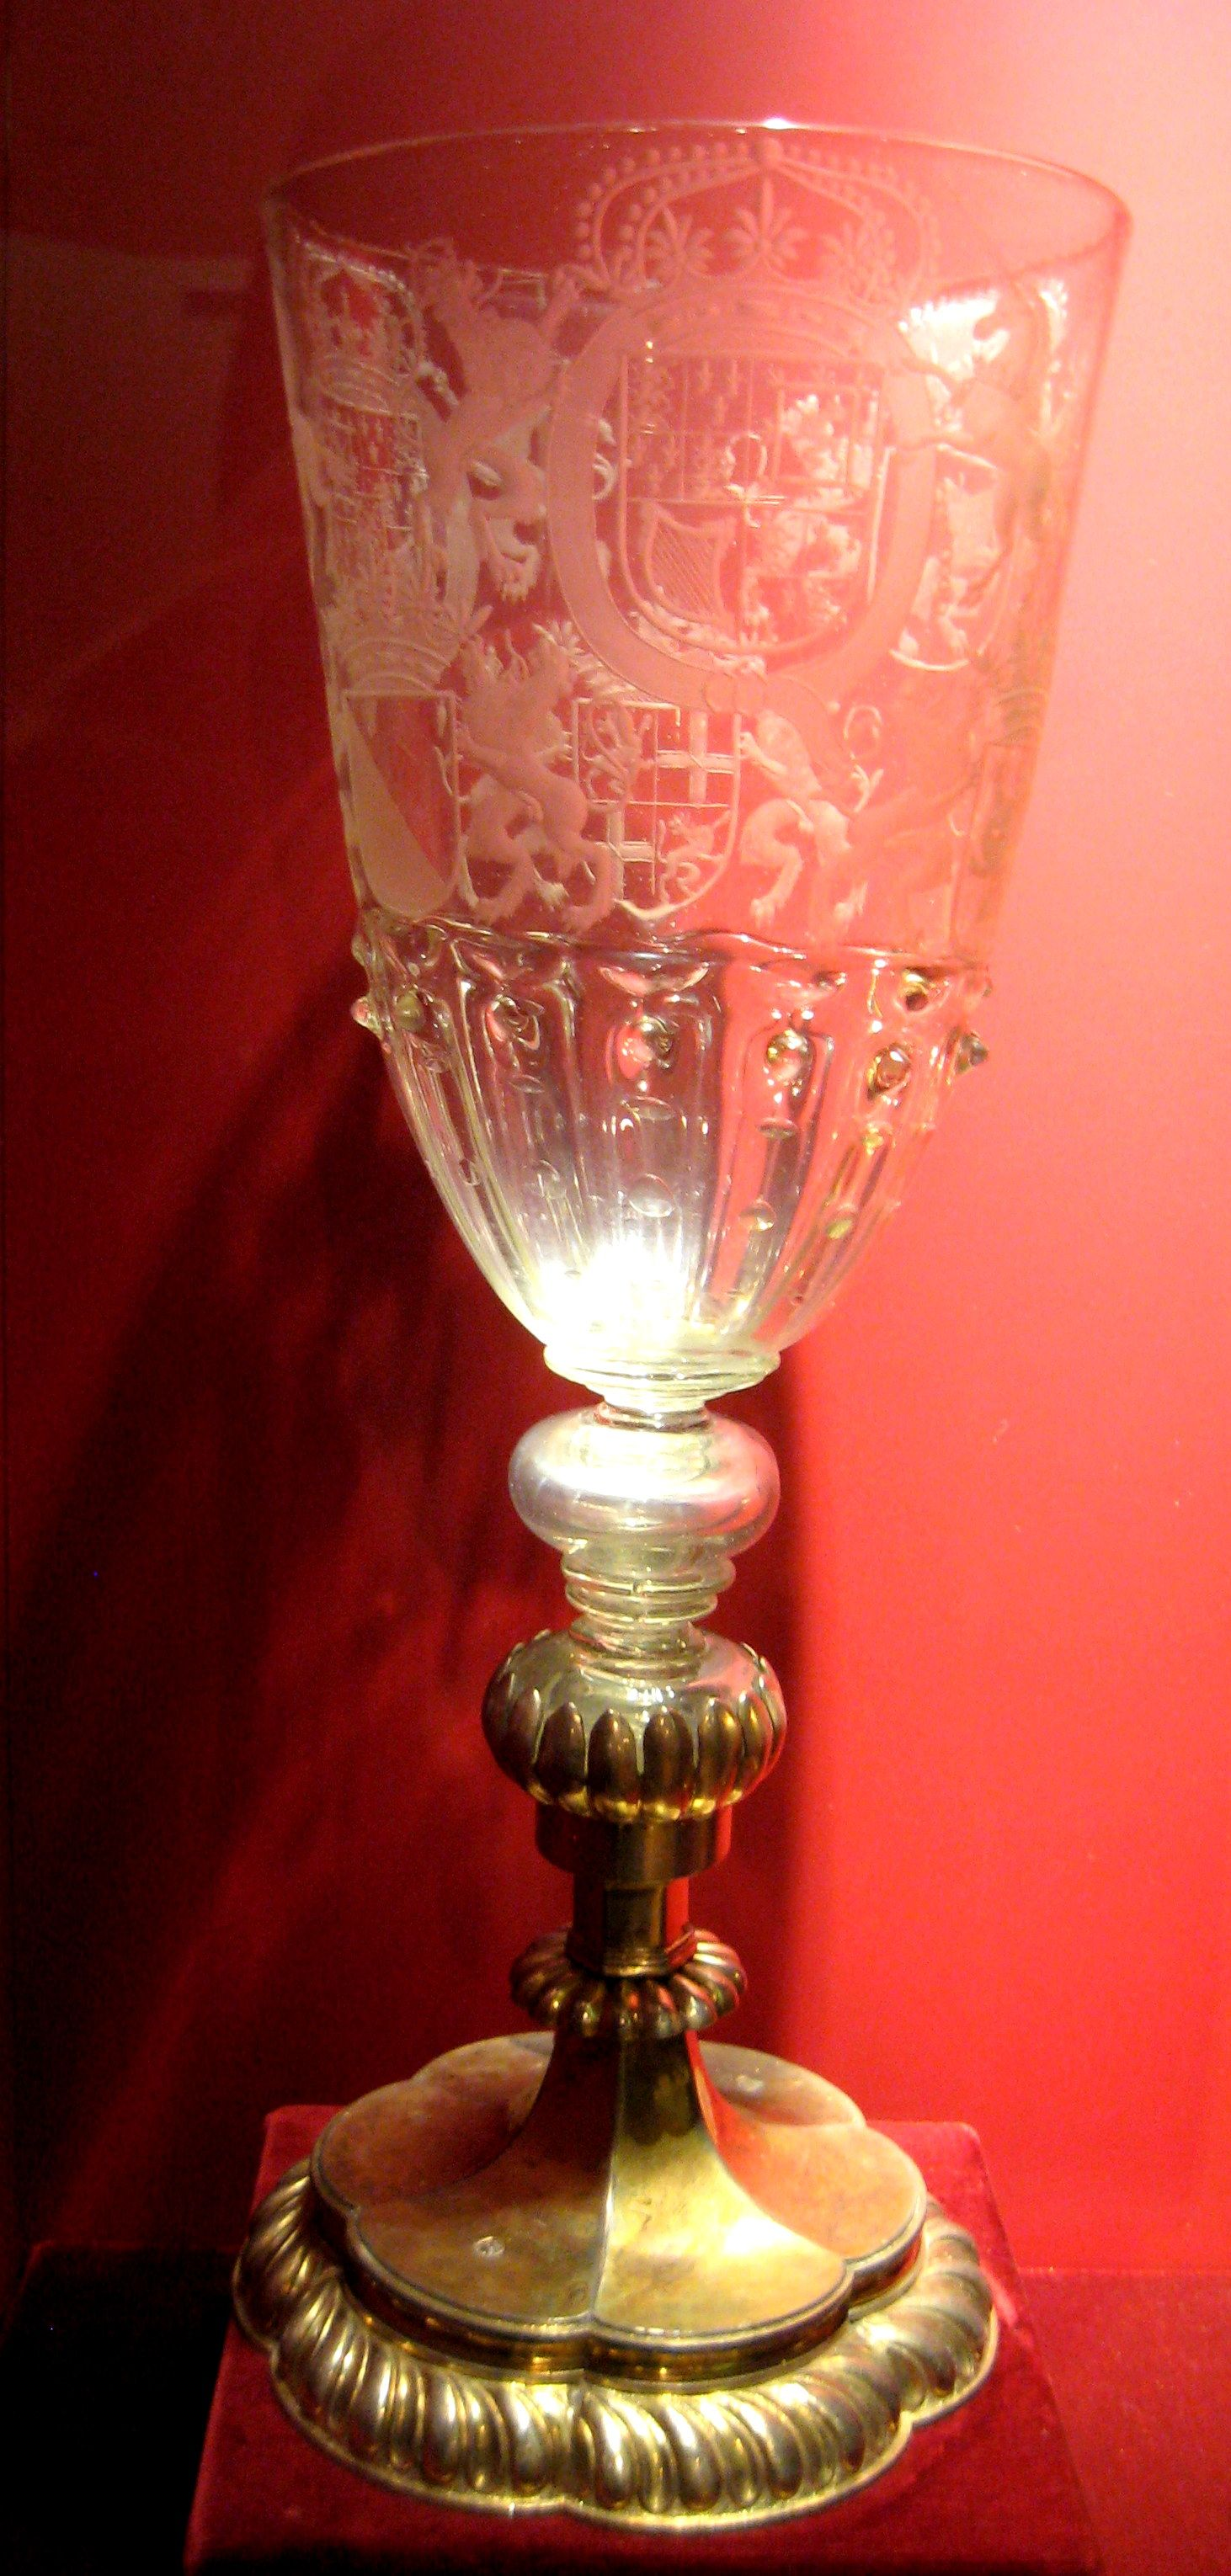 1689 English Goblet At The Royal Ontario Museum Toronto From The Curators Comments Engraved Glass Was Highly Valued In The Renaissance Antiek Geschiedenis